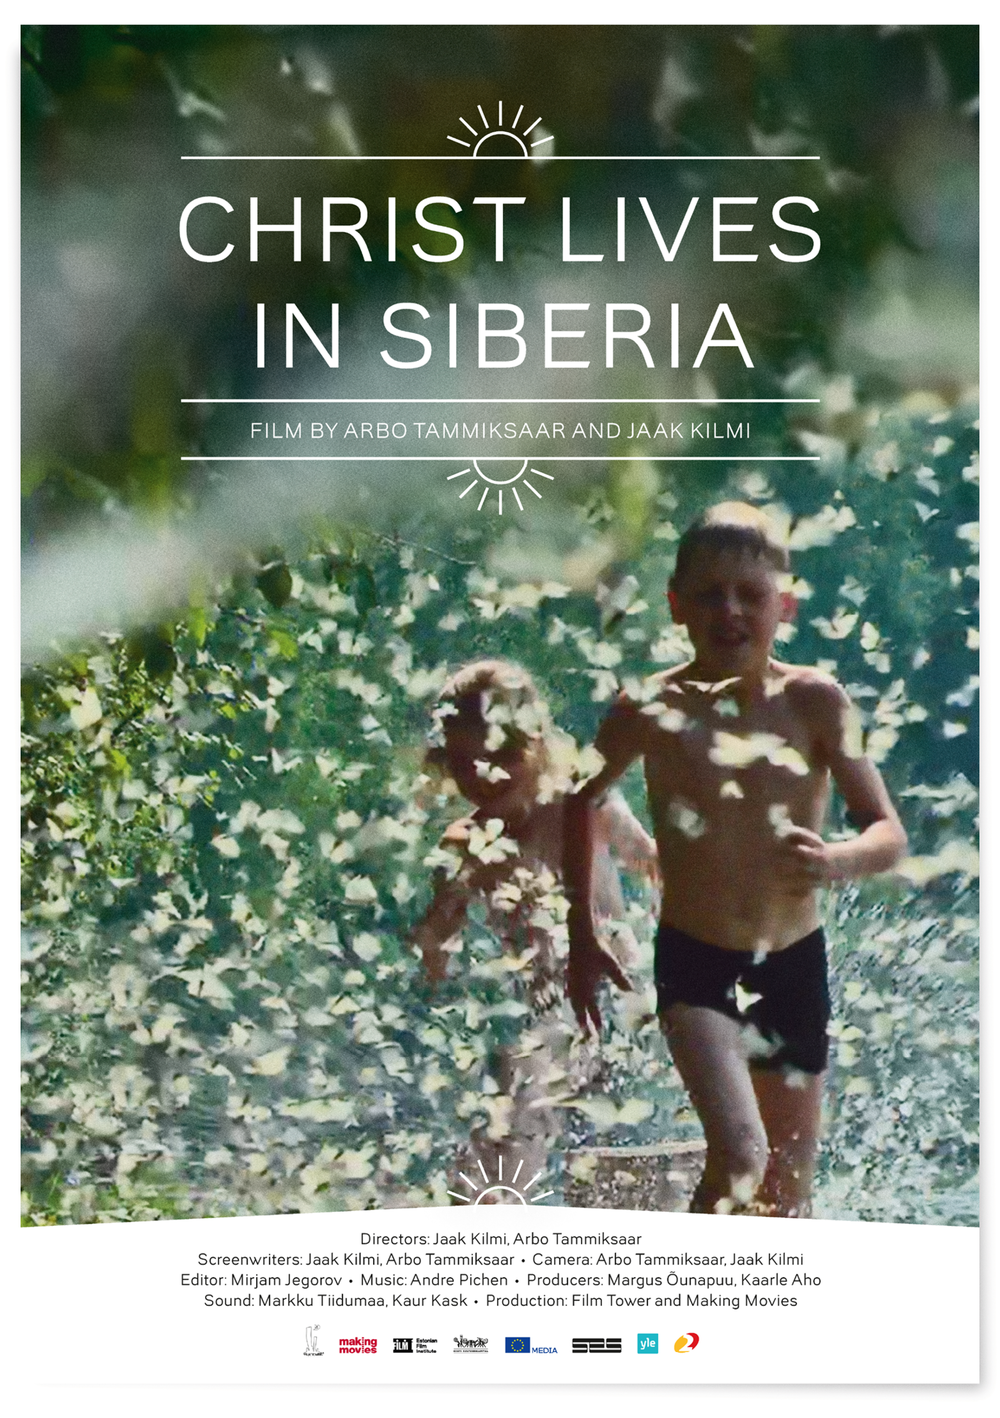 CHRIST LIVES IN SIBERIA